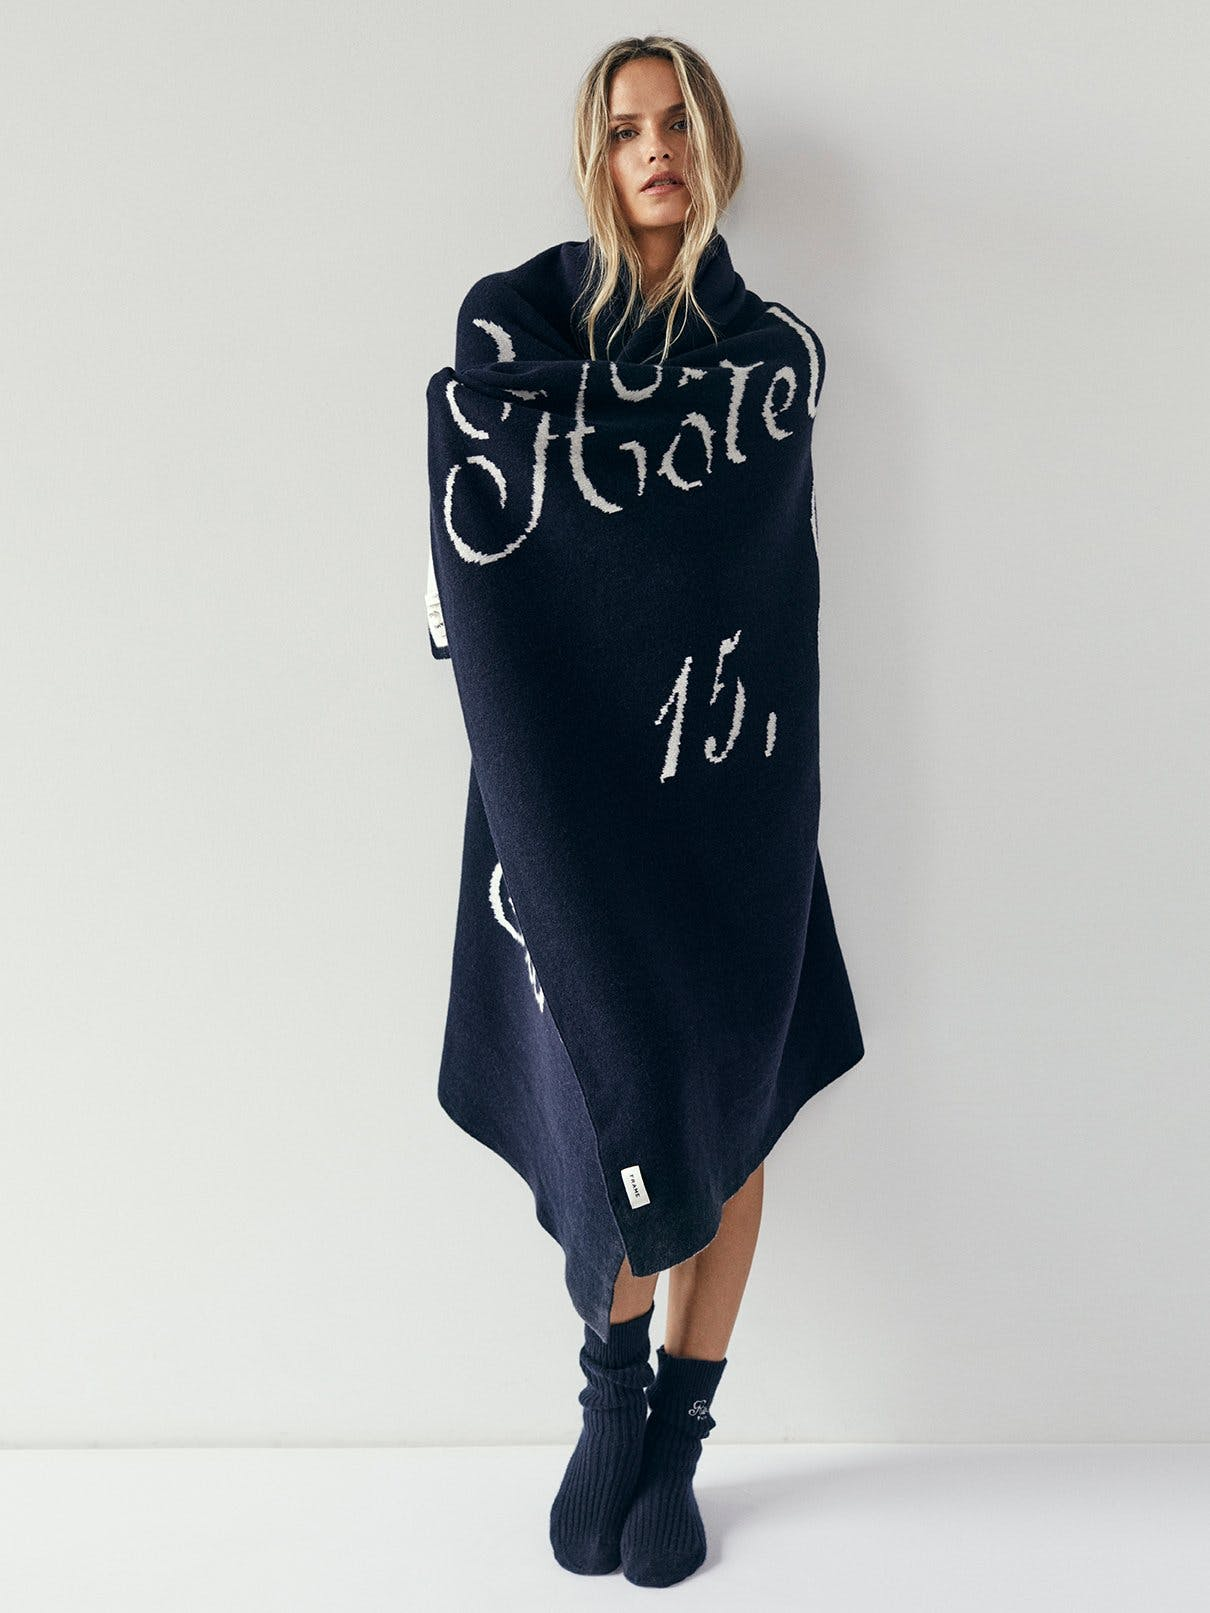 blanket on model front view